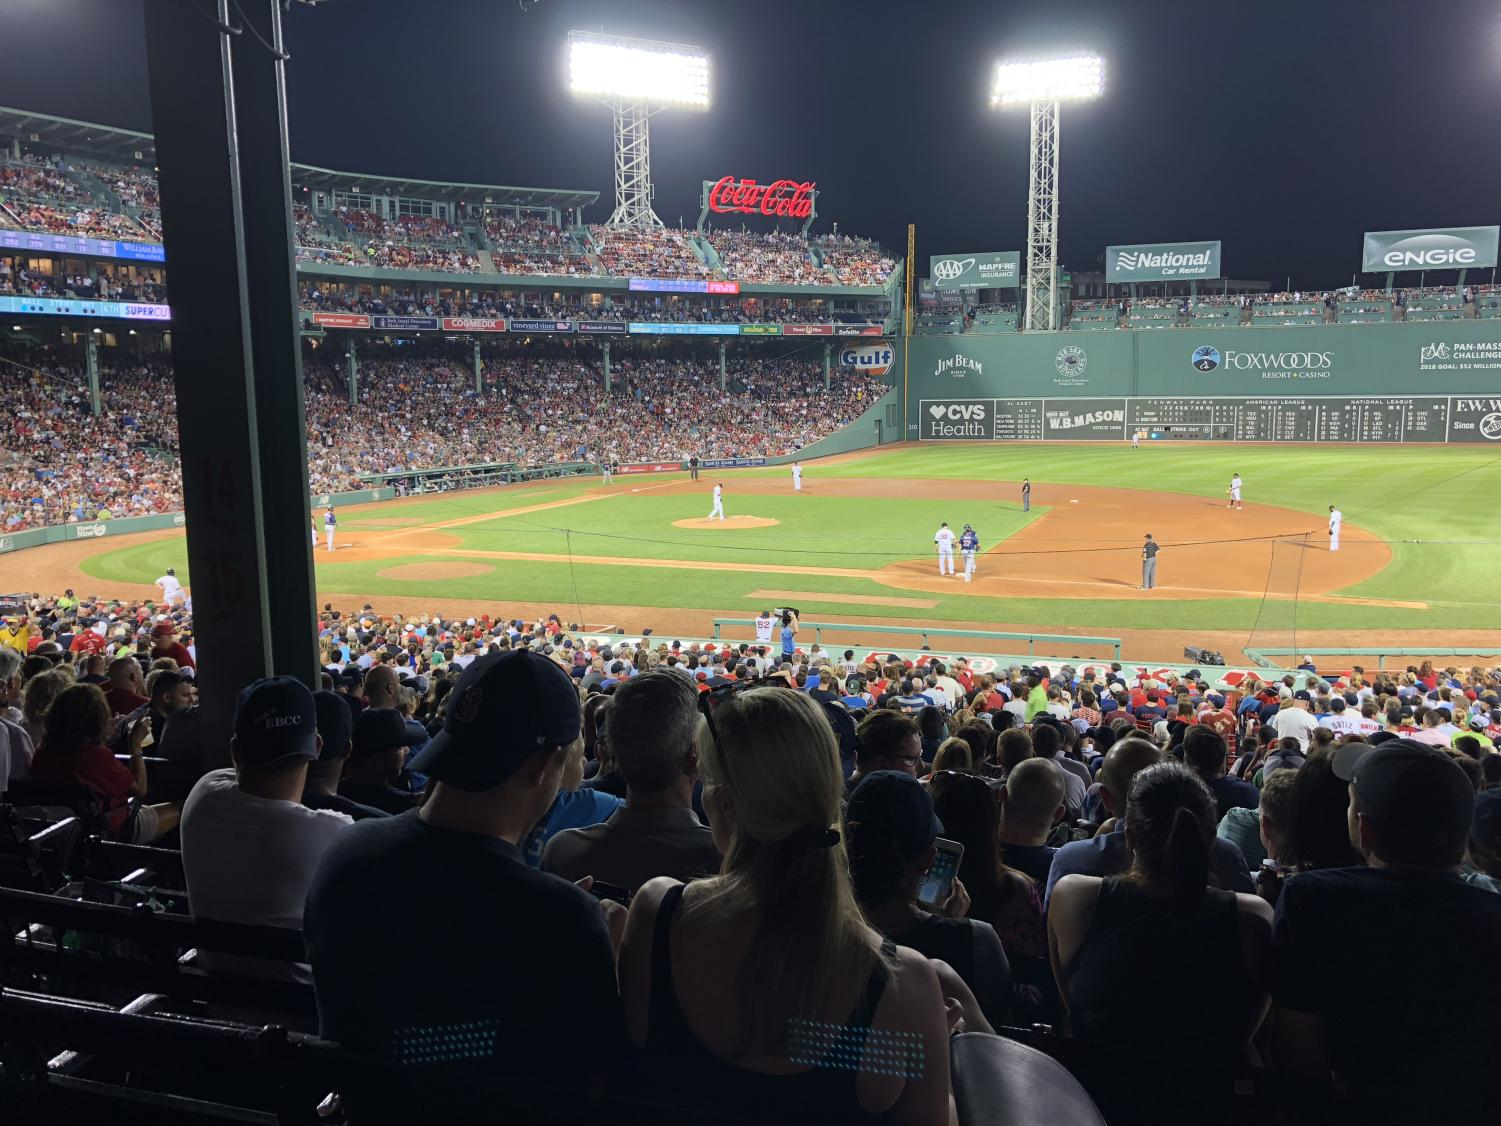 Fenway Park, July 28, 2018, Boston Red Sox vs Minnesota Twins.